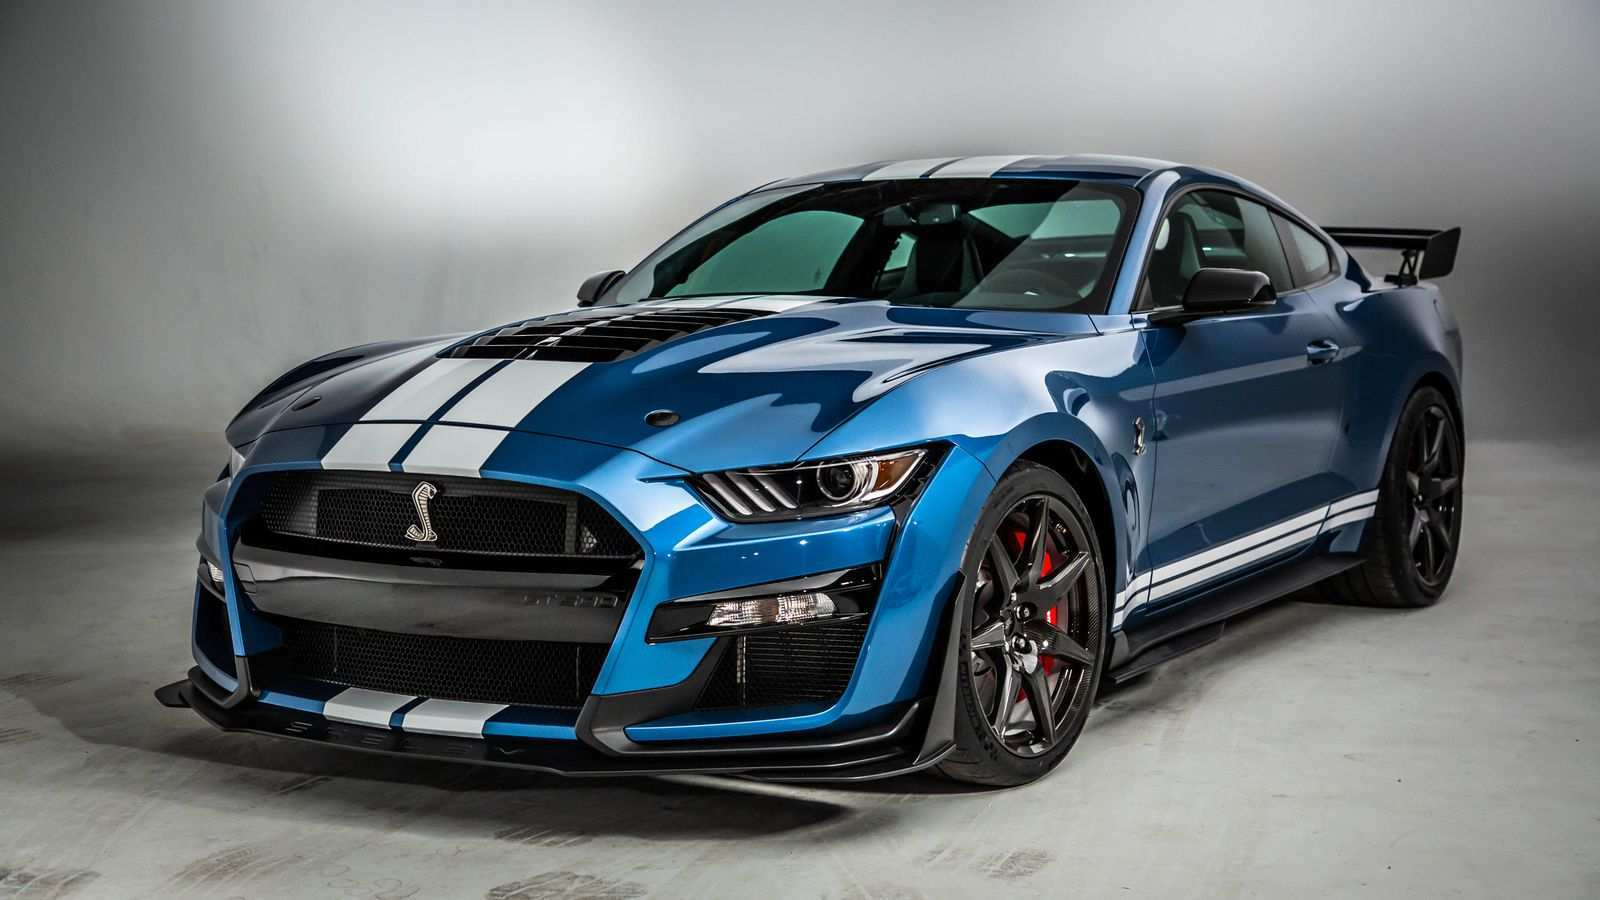 66 A 2020 Ford Shelby Gt500 Price Price